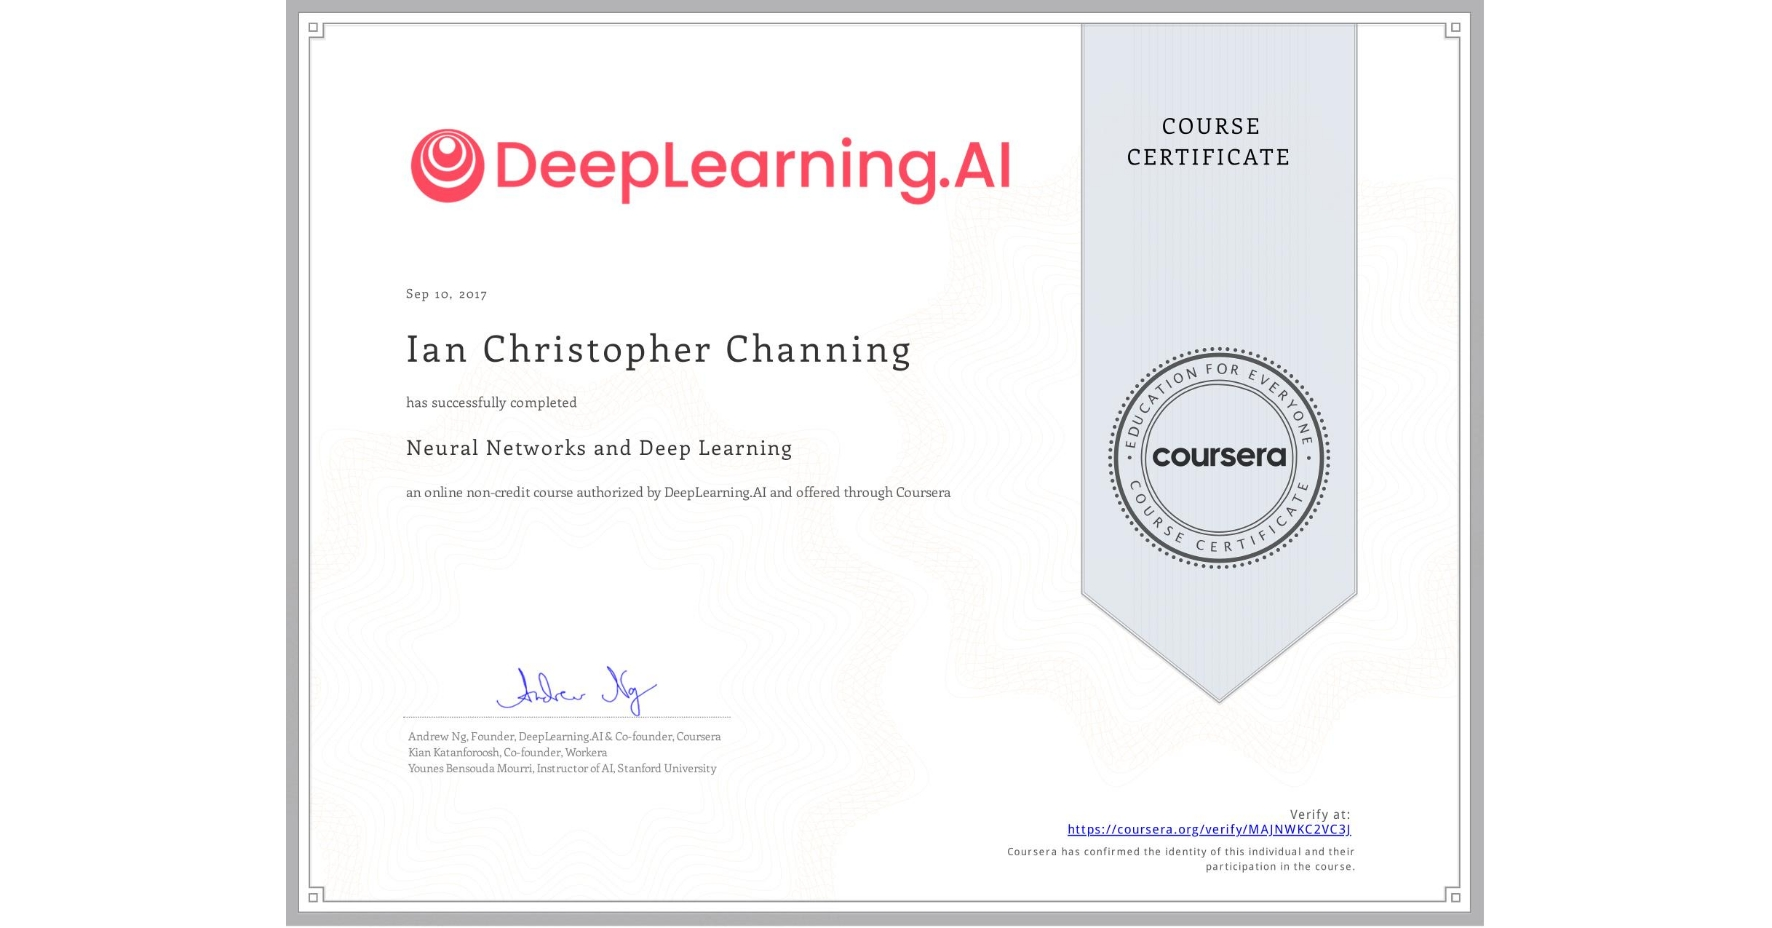 View certificate for Ian Christopher Channing, Neural Networks and Deep Learning, an online non-credit course authorized by DeepLearning.AI and offered through Coursera